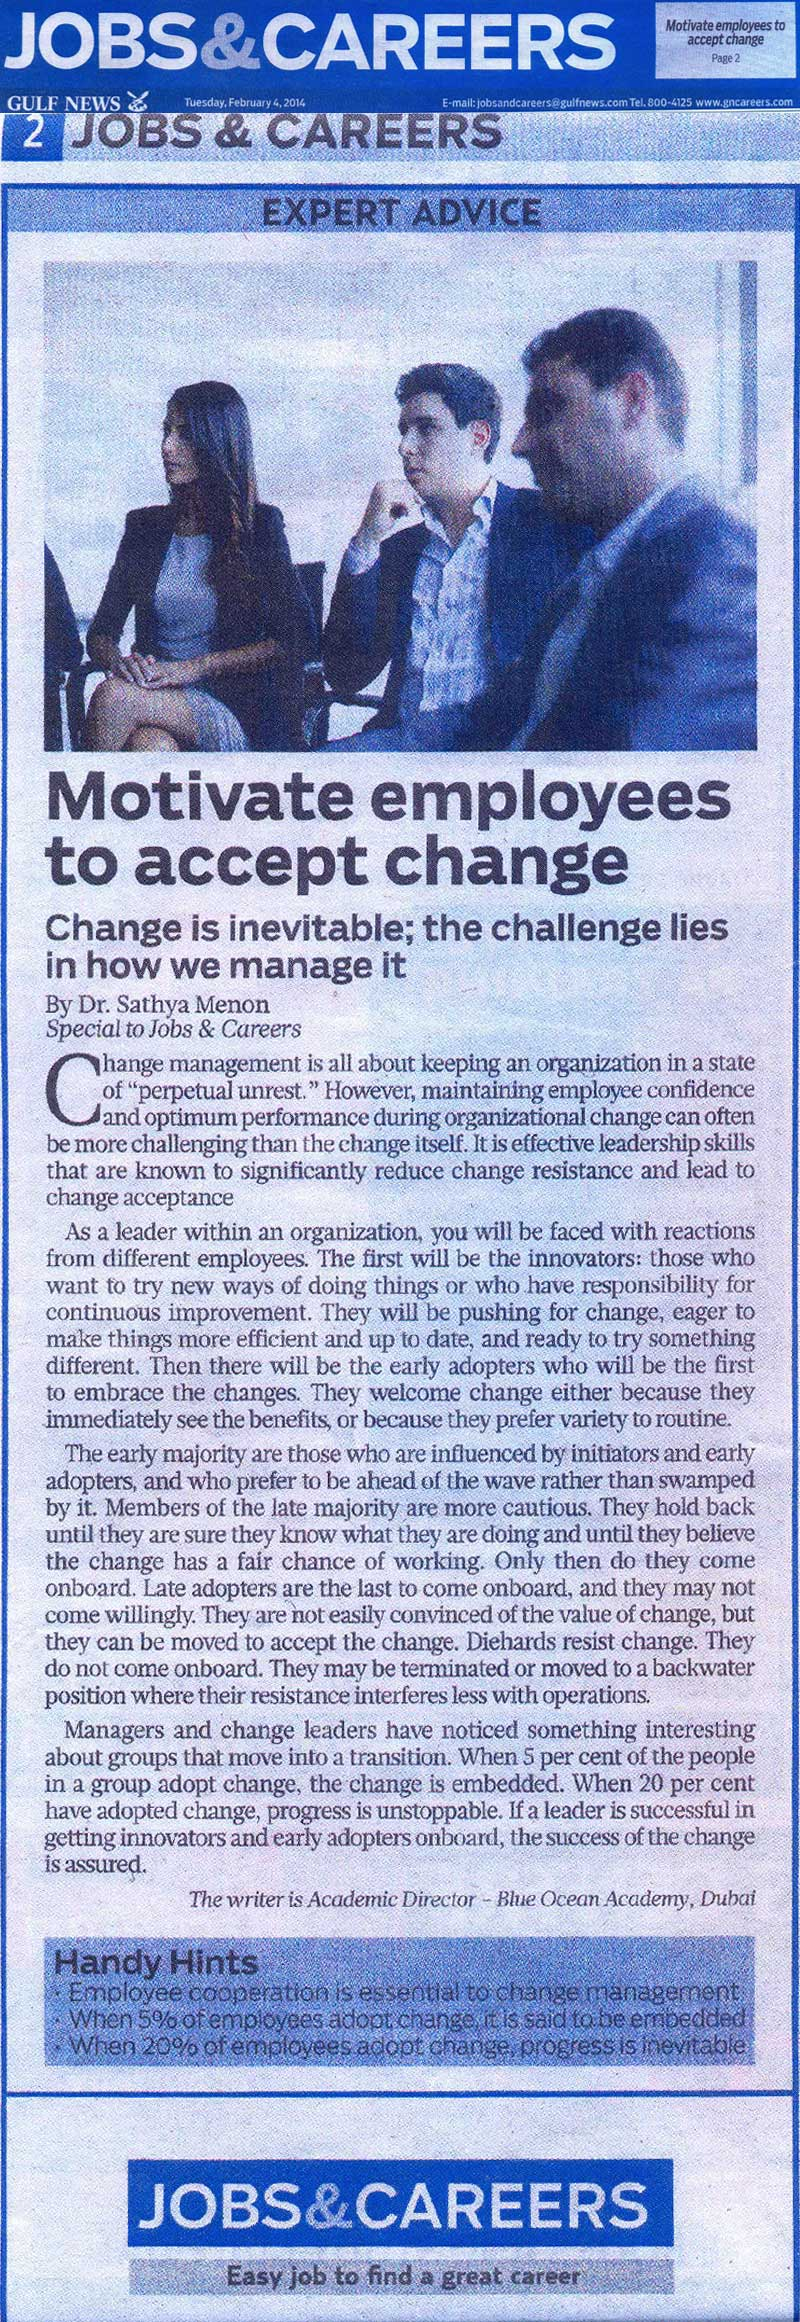 Motivate employees to accept change